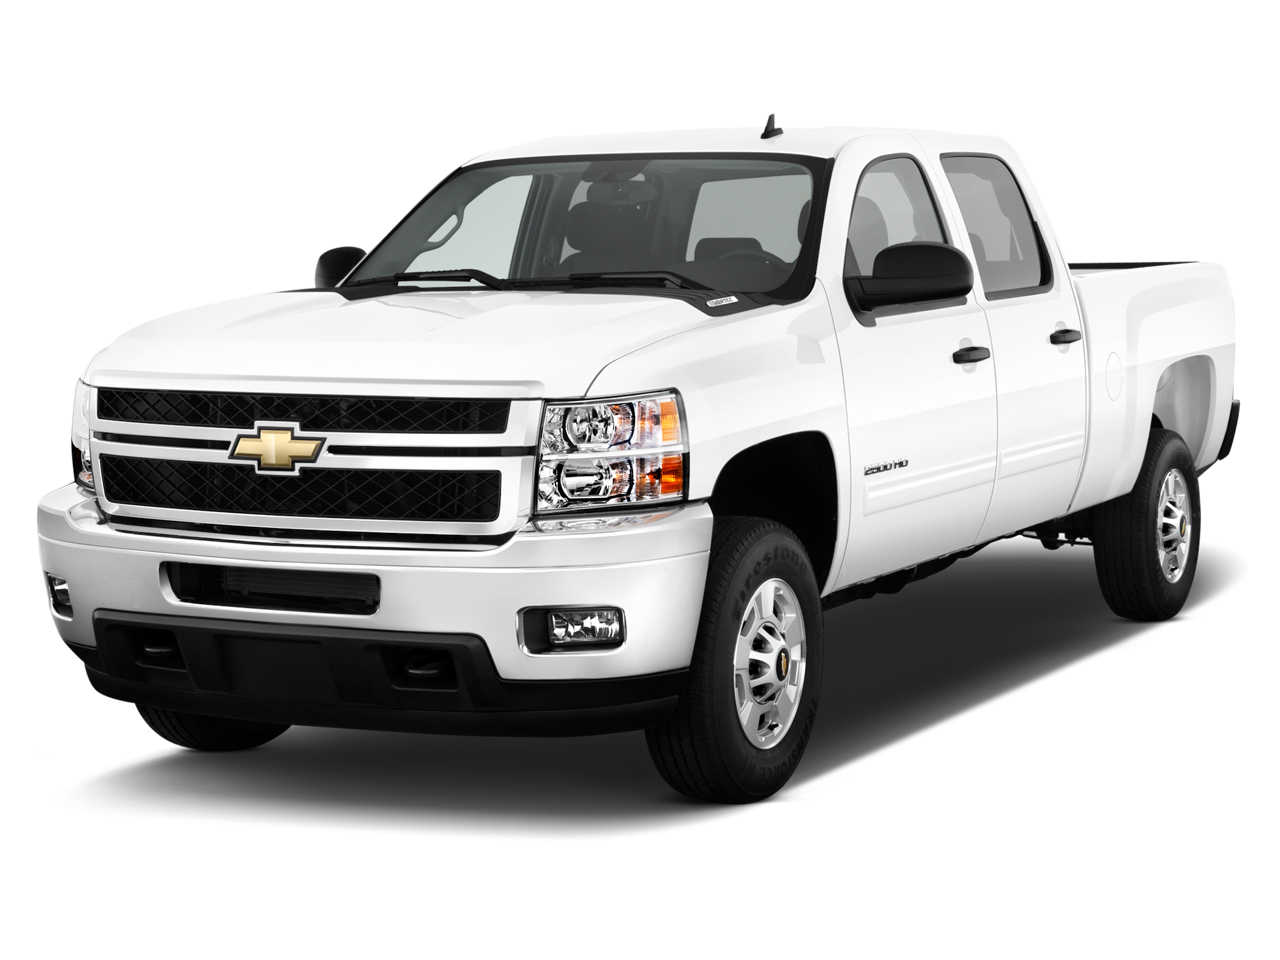 2012 chevrolet silverado 2500hd chevy review ratings specs prices and photos the car. Black Bedroom Furniture Sets. Home Design Ideas